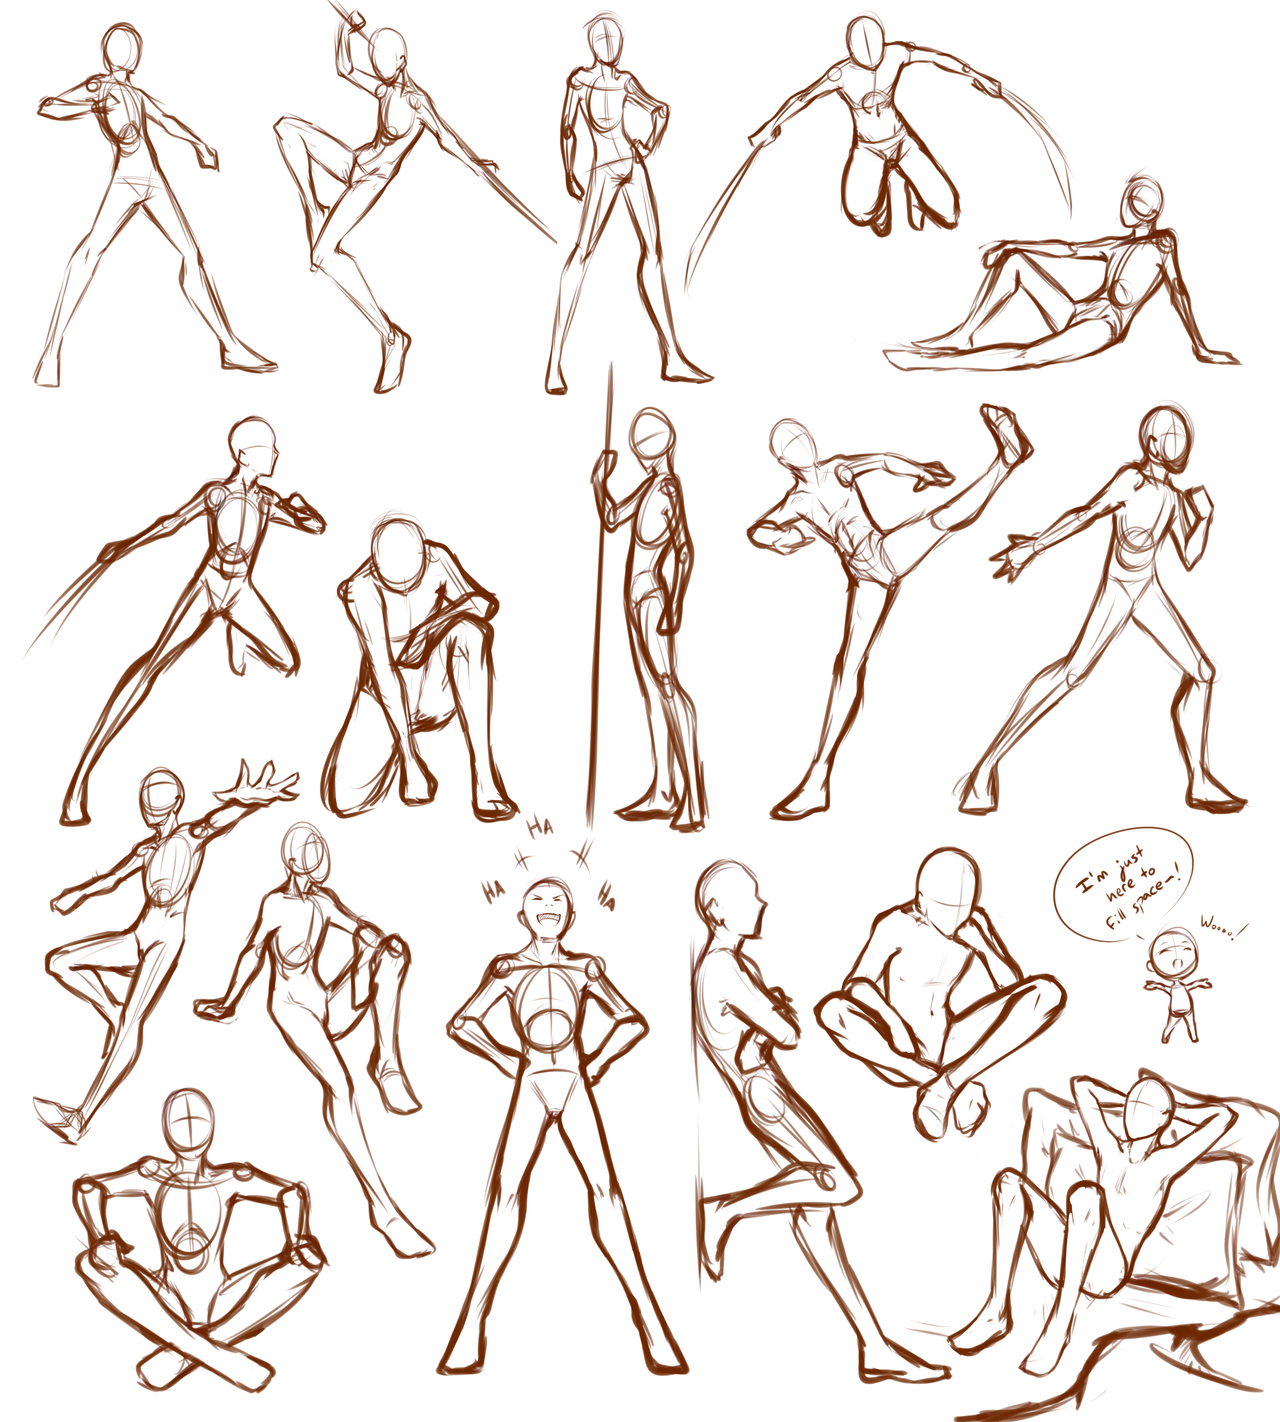 Male Poses Anime Poses Reference Art Poses Drawing Poses Male